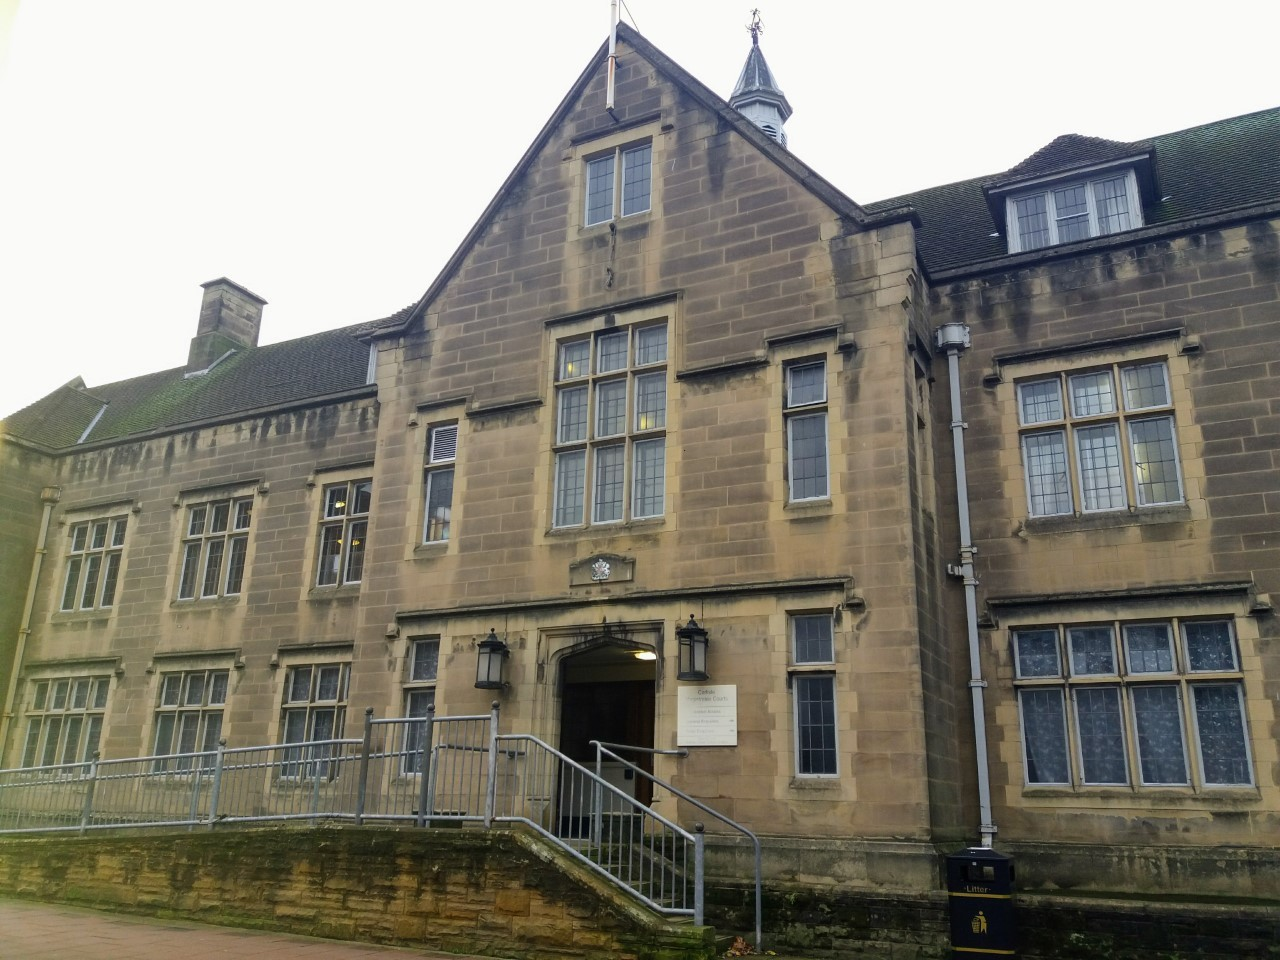 Justice: Carlisle's Rickergate magistrates' court